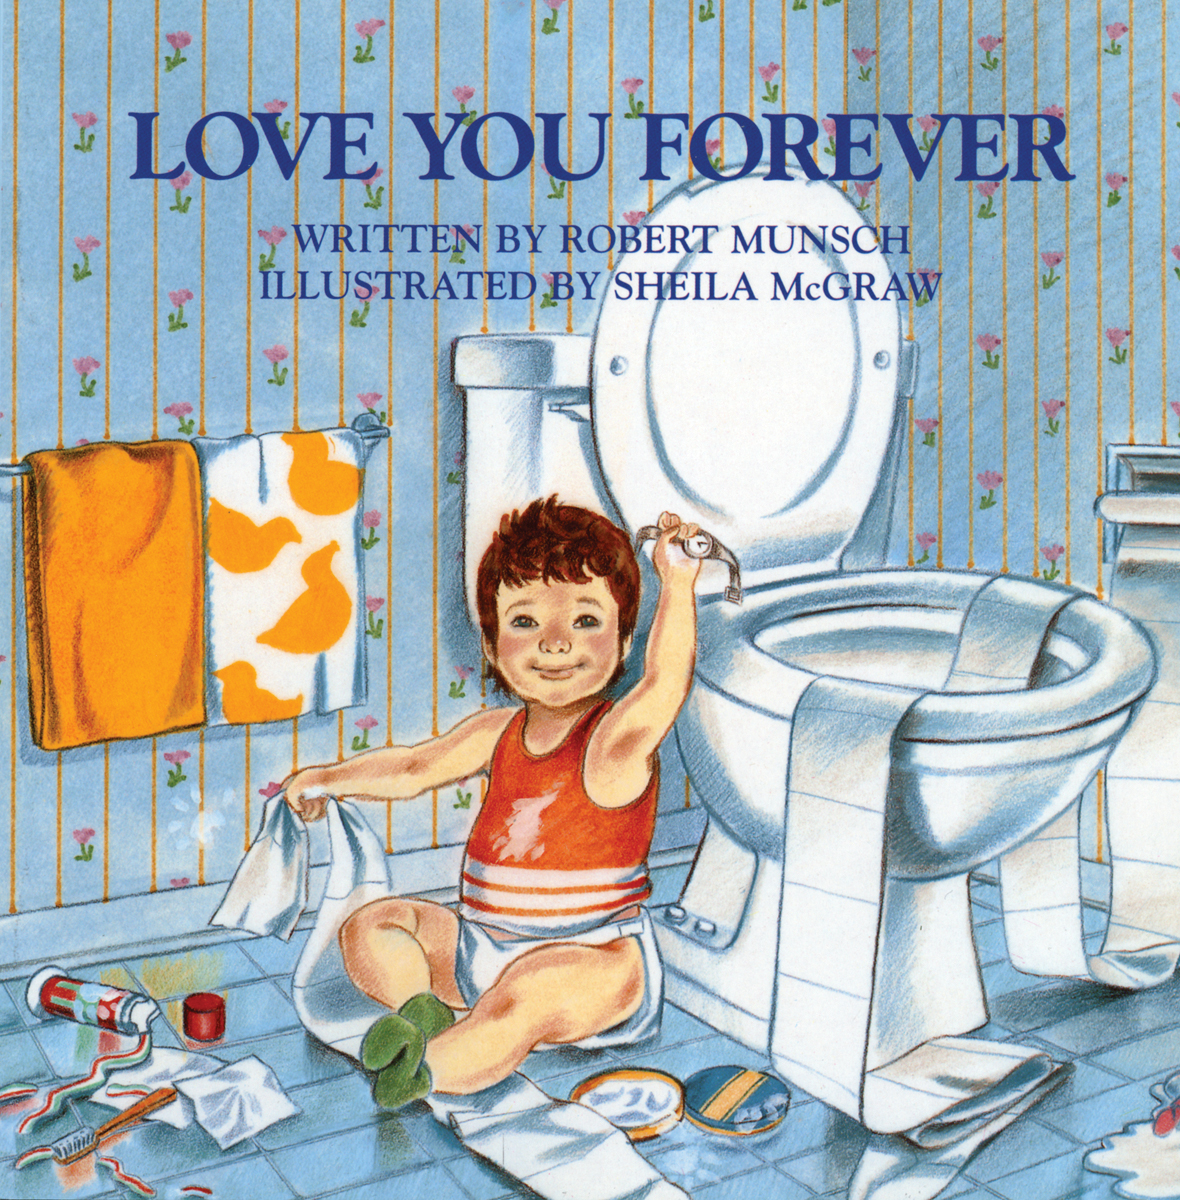 Love You Forever written by Robert Munsch, illustrated by Sheila McGraw